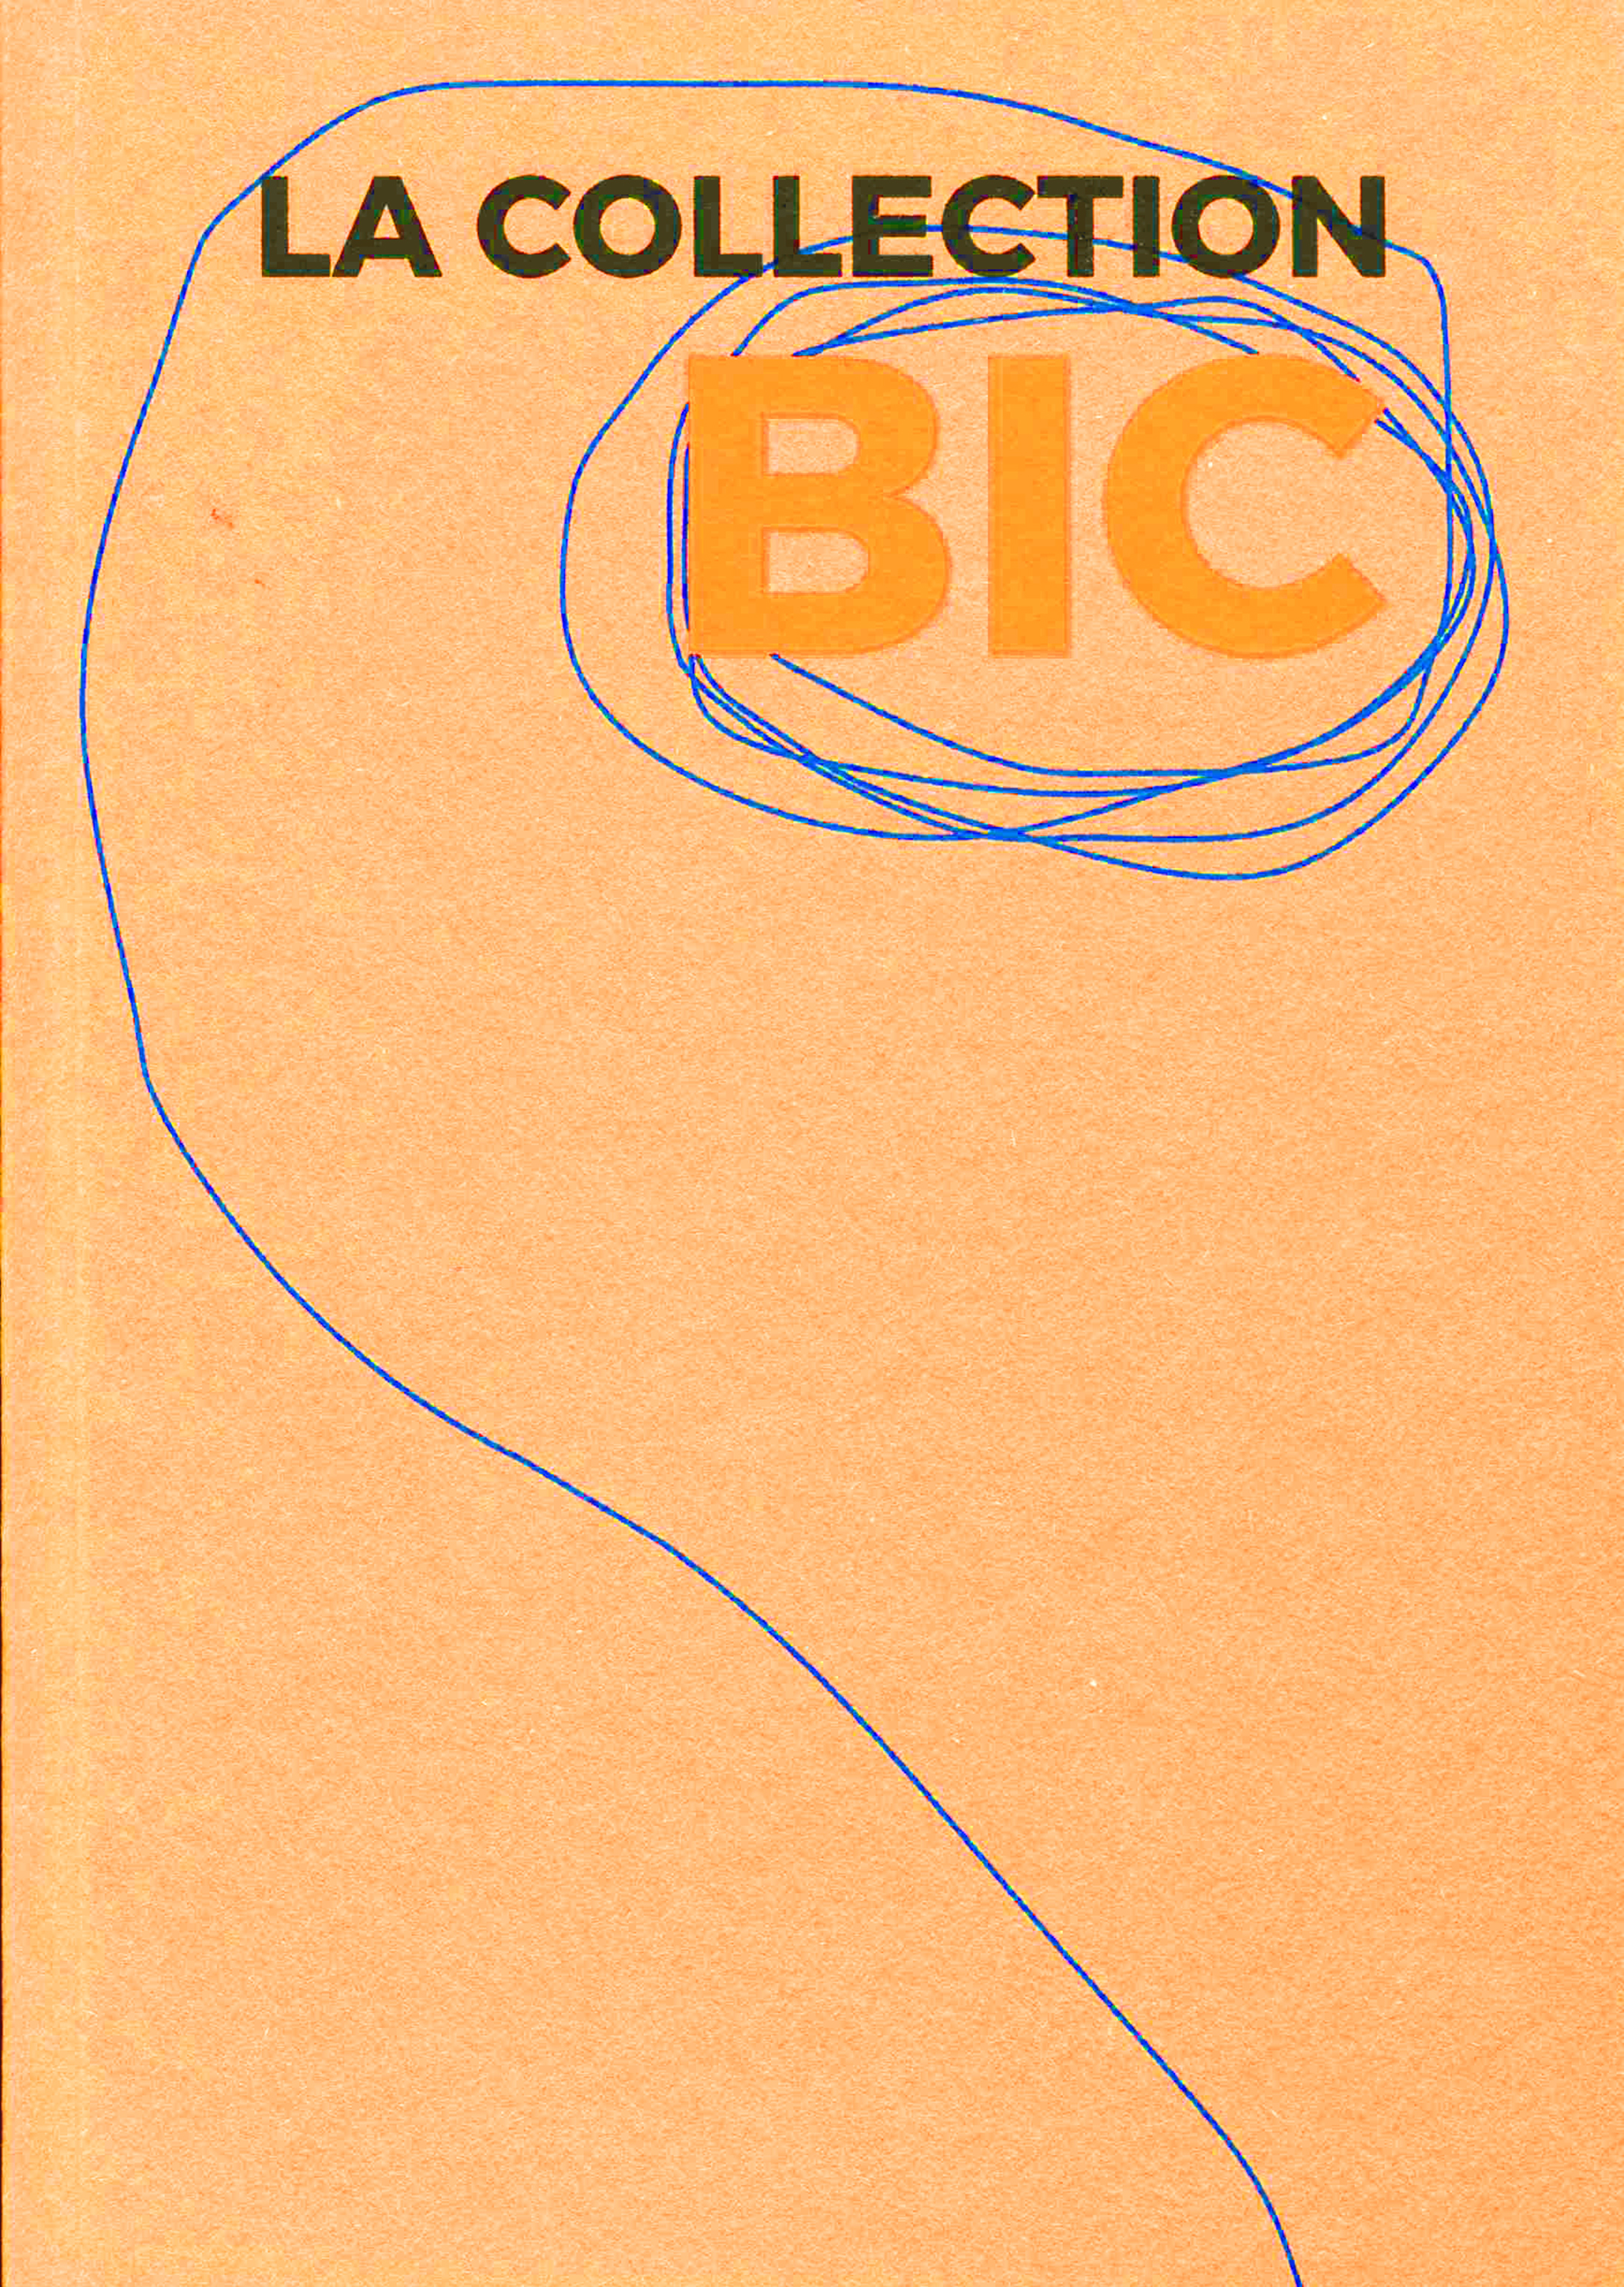 THE KID in BIC COLLECTION Exhibition Catalogue - First semester 2018 Print Issue - France - Page 39 - Cover page